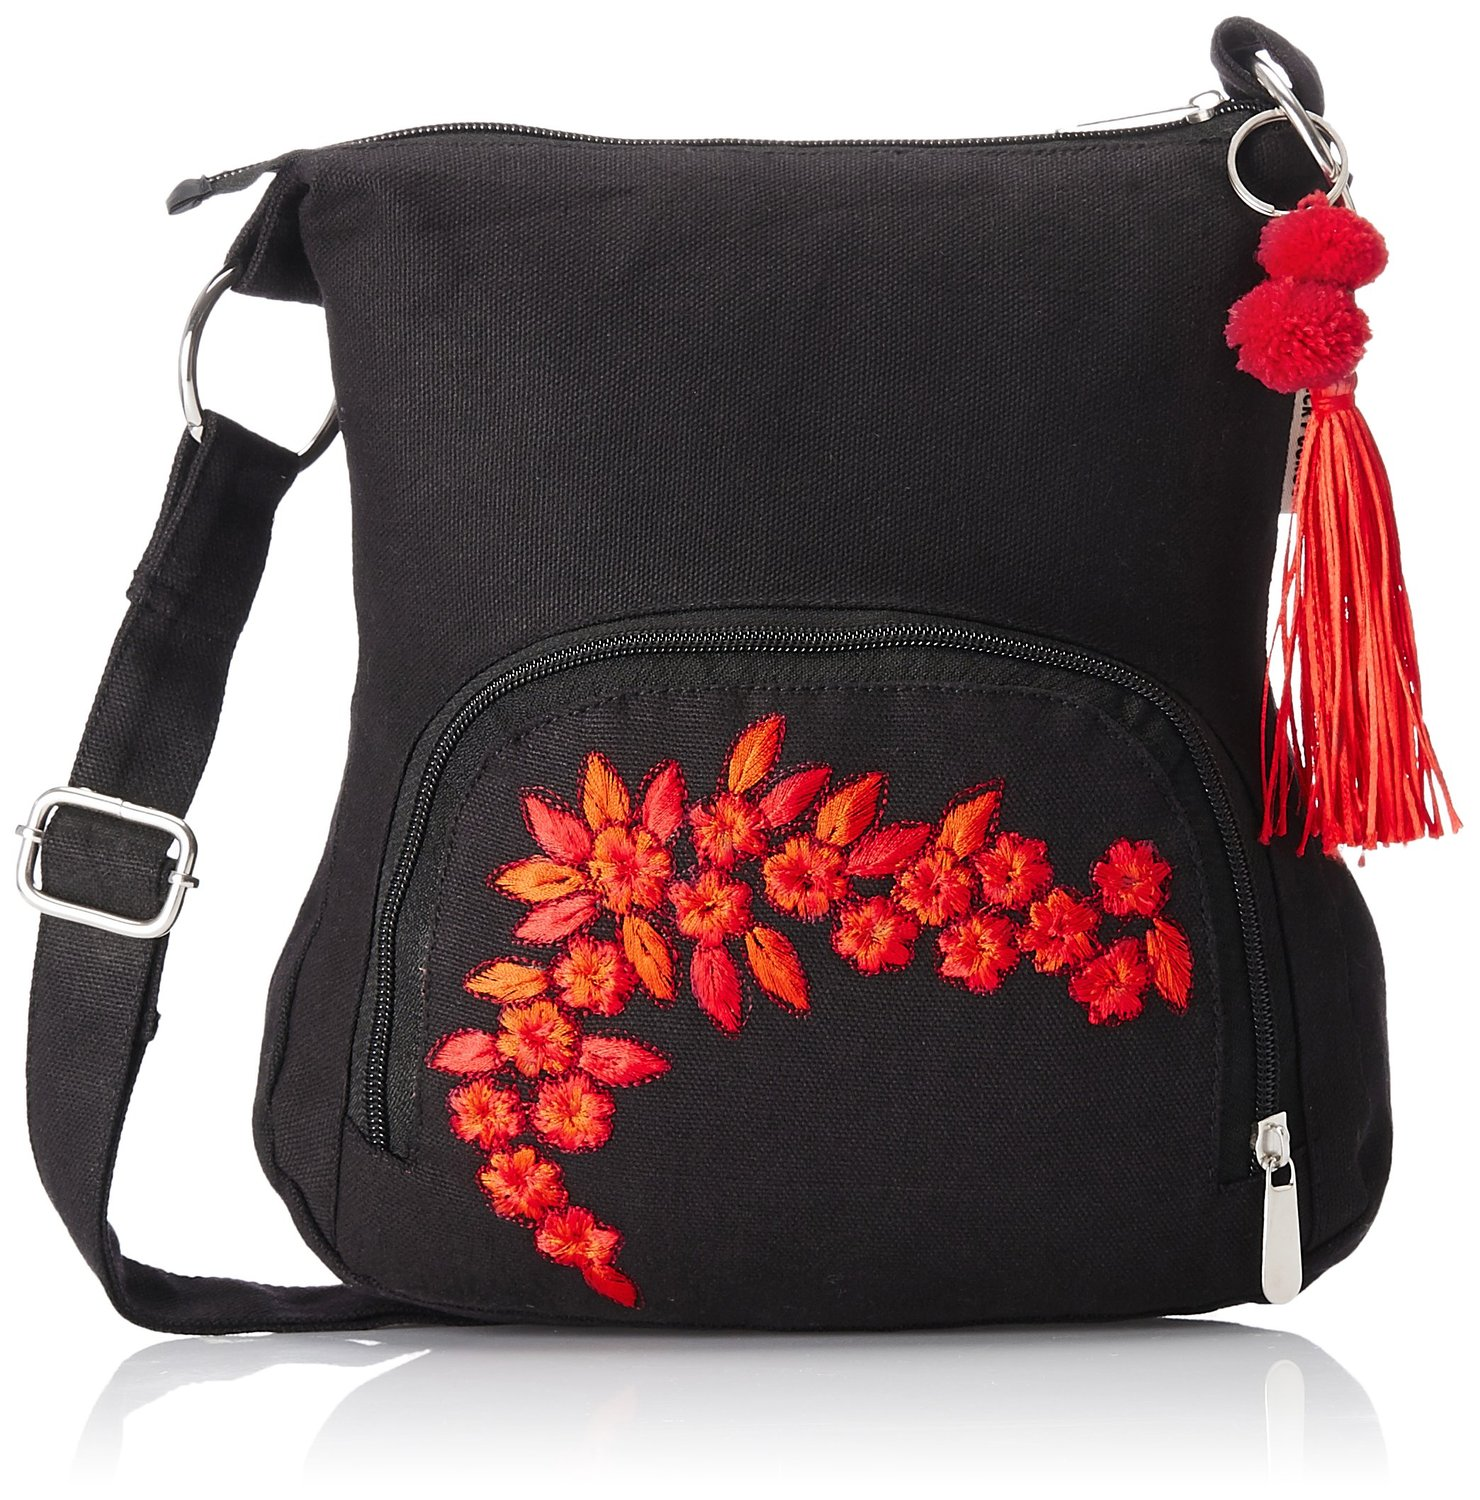 LeoRESALE BAGS IN CHENNAI  Bags provide Messenger . It is balck colour.And it designed with Top Handle BAGS RETAILS IN CHENNAI and Long adjustable Strap. BAGS FOR SALE IN CHENNAI Best Smart Laptop Excellent  Dealers In Chennai. In Chennai